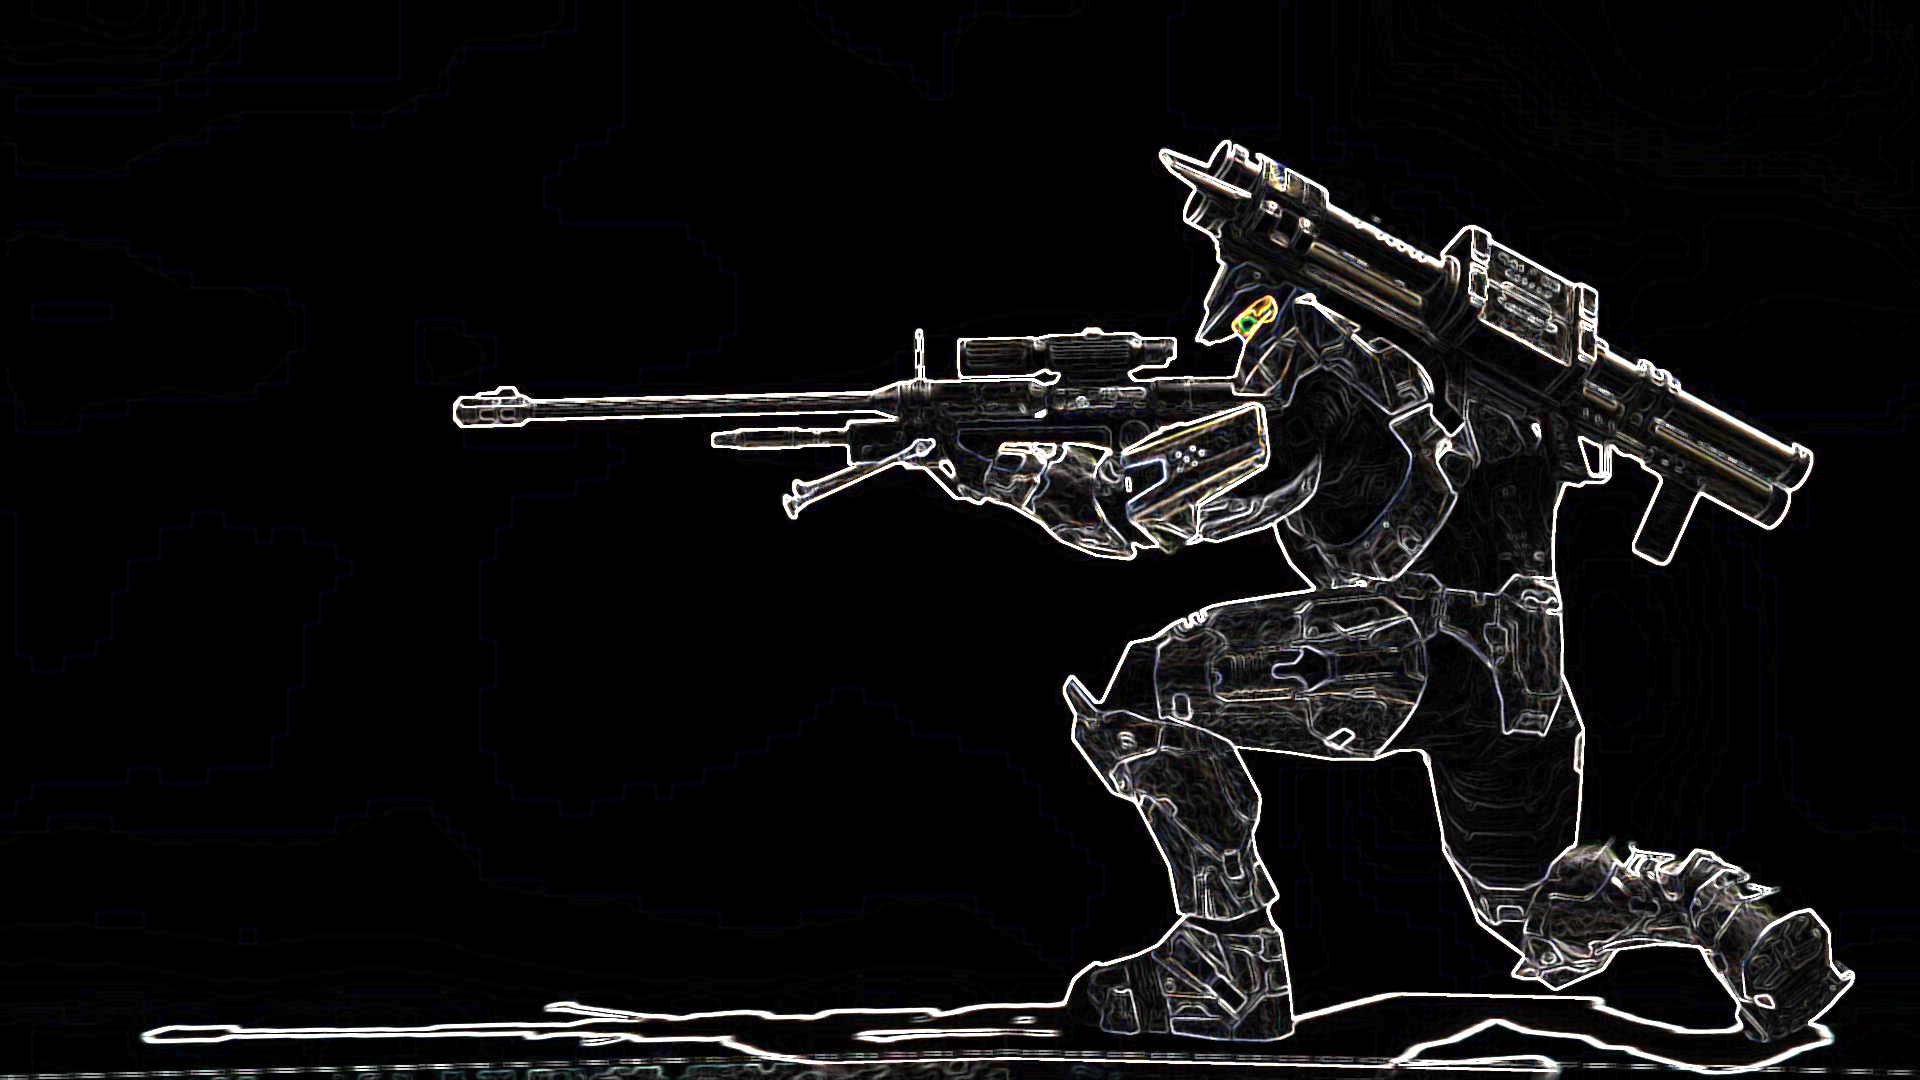 Halo wallpaper 1920x1080 216969 WallpaperUP 1920x1080